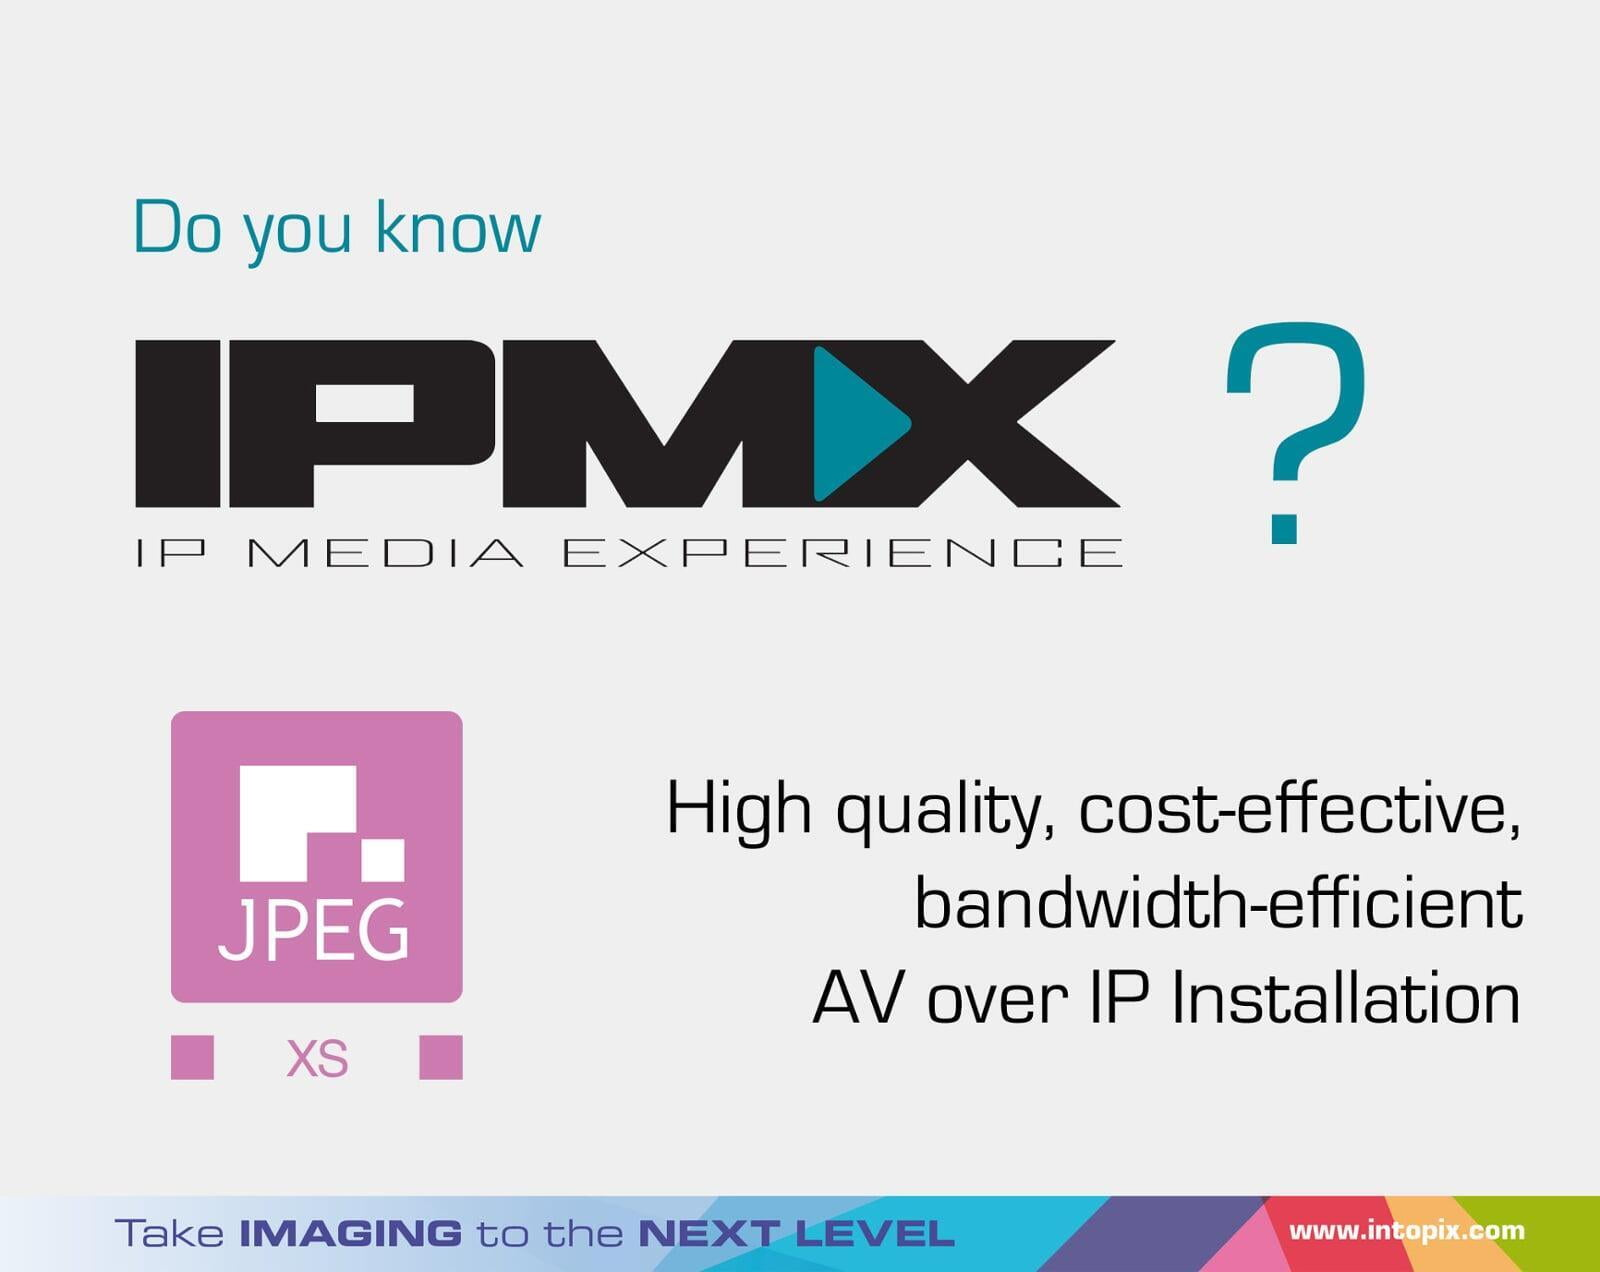 Do you know what IPMX means ?